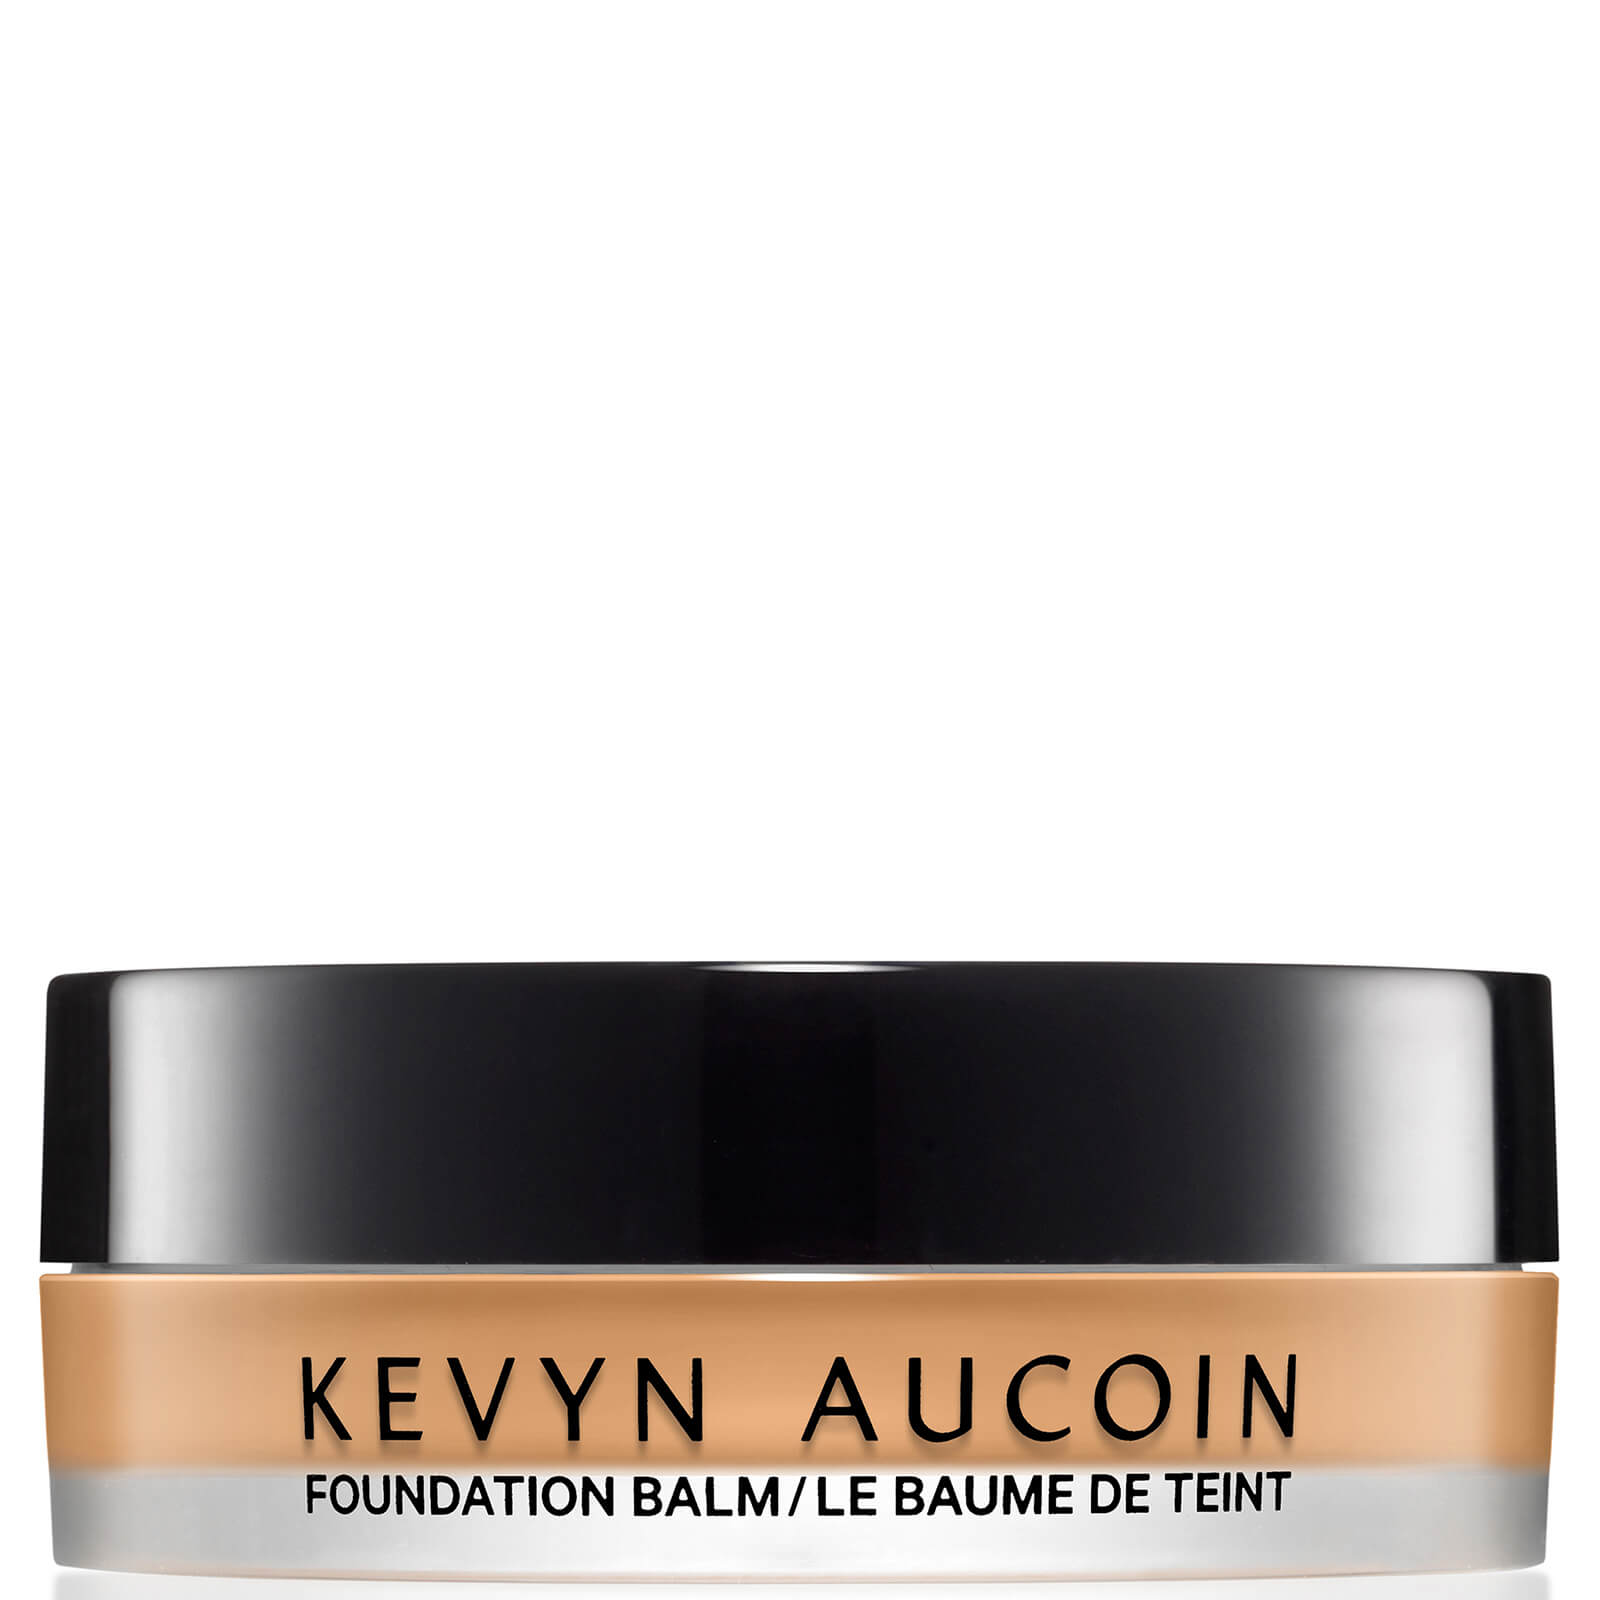 Kevyn Aucoin Foundation Balm 22.3g (Various Shades) - 06 Medium